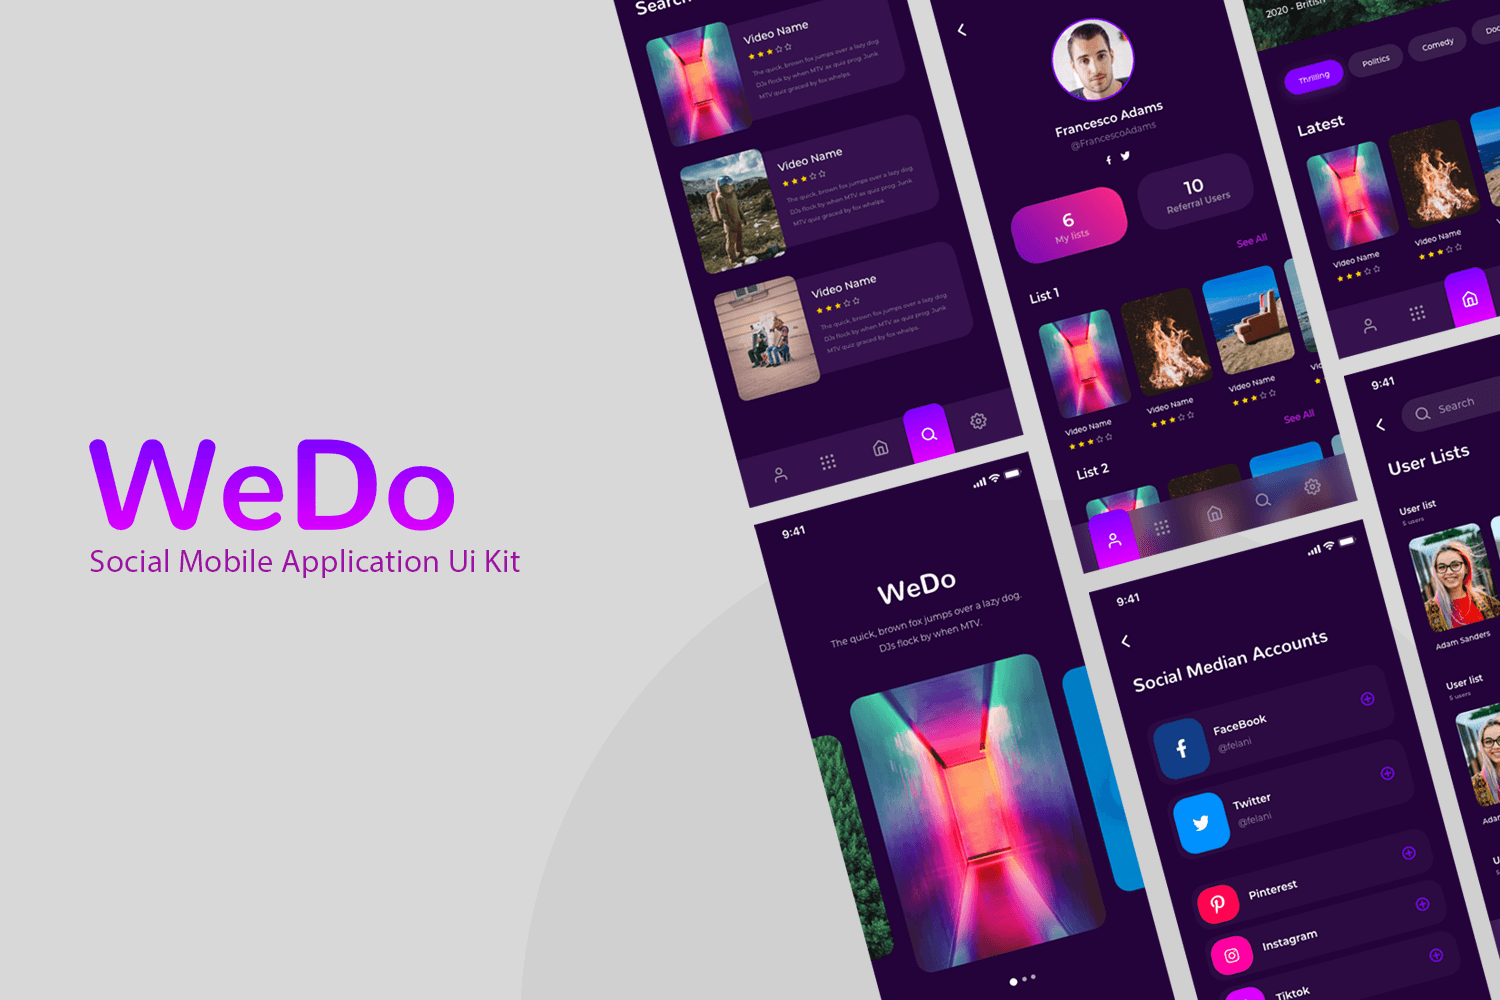 We Do - Social App UI Kit